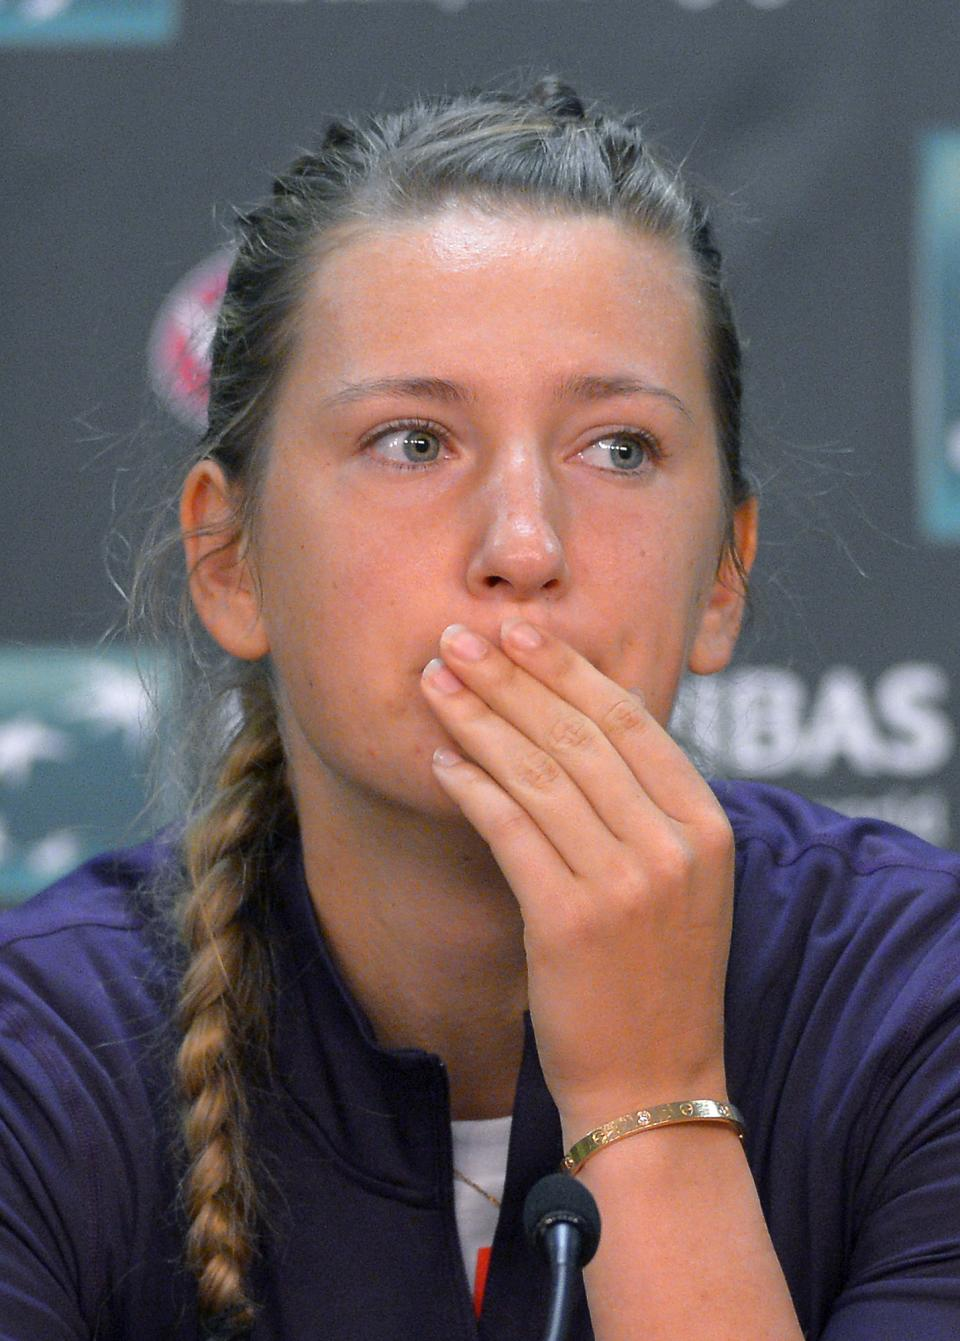 Victoria Azarenka, of Belarus, listens during a news conference to announce that she had withdrawn from the BNP Paribas Open tennis tournament due to an ankle injury, Thursday, March 14, 2013, in Indian Wells, Calif. (AP Photo/Mark J. Terrill)